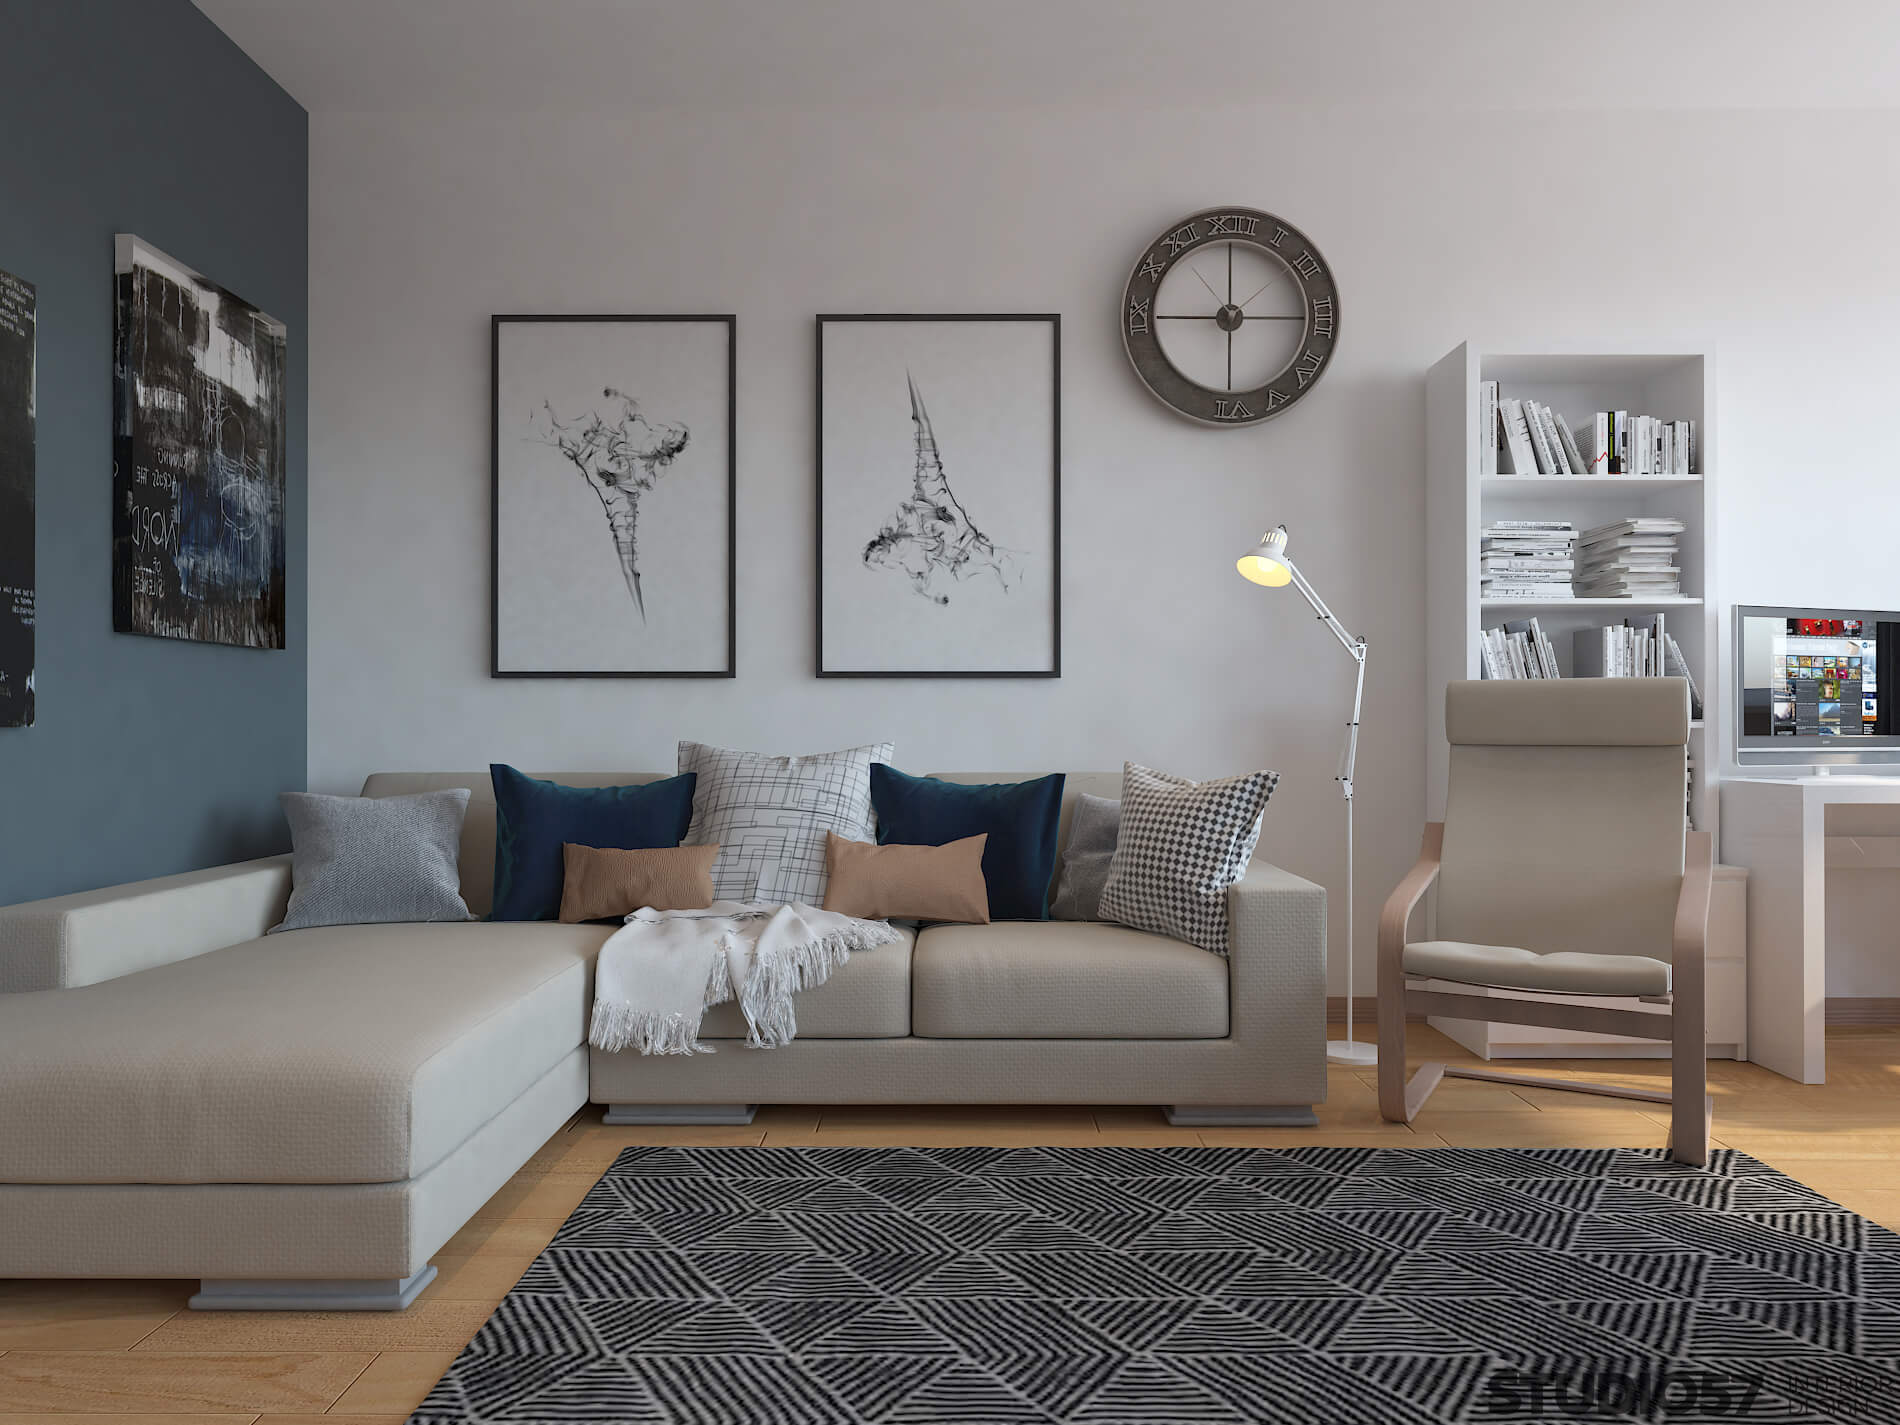 Interior living room with blue walls